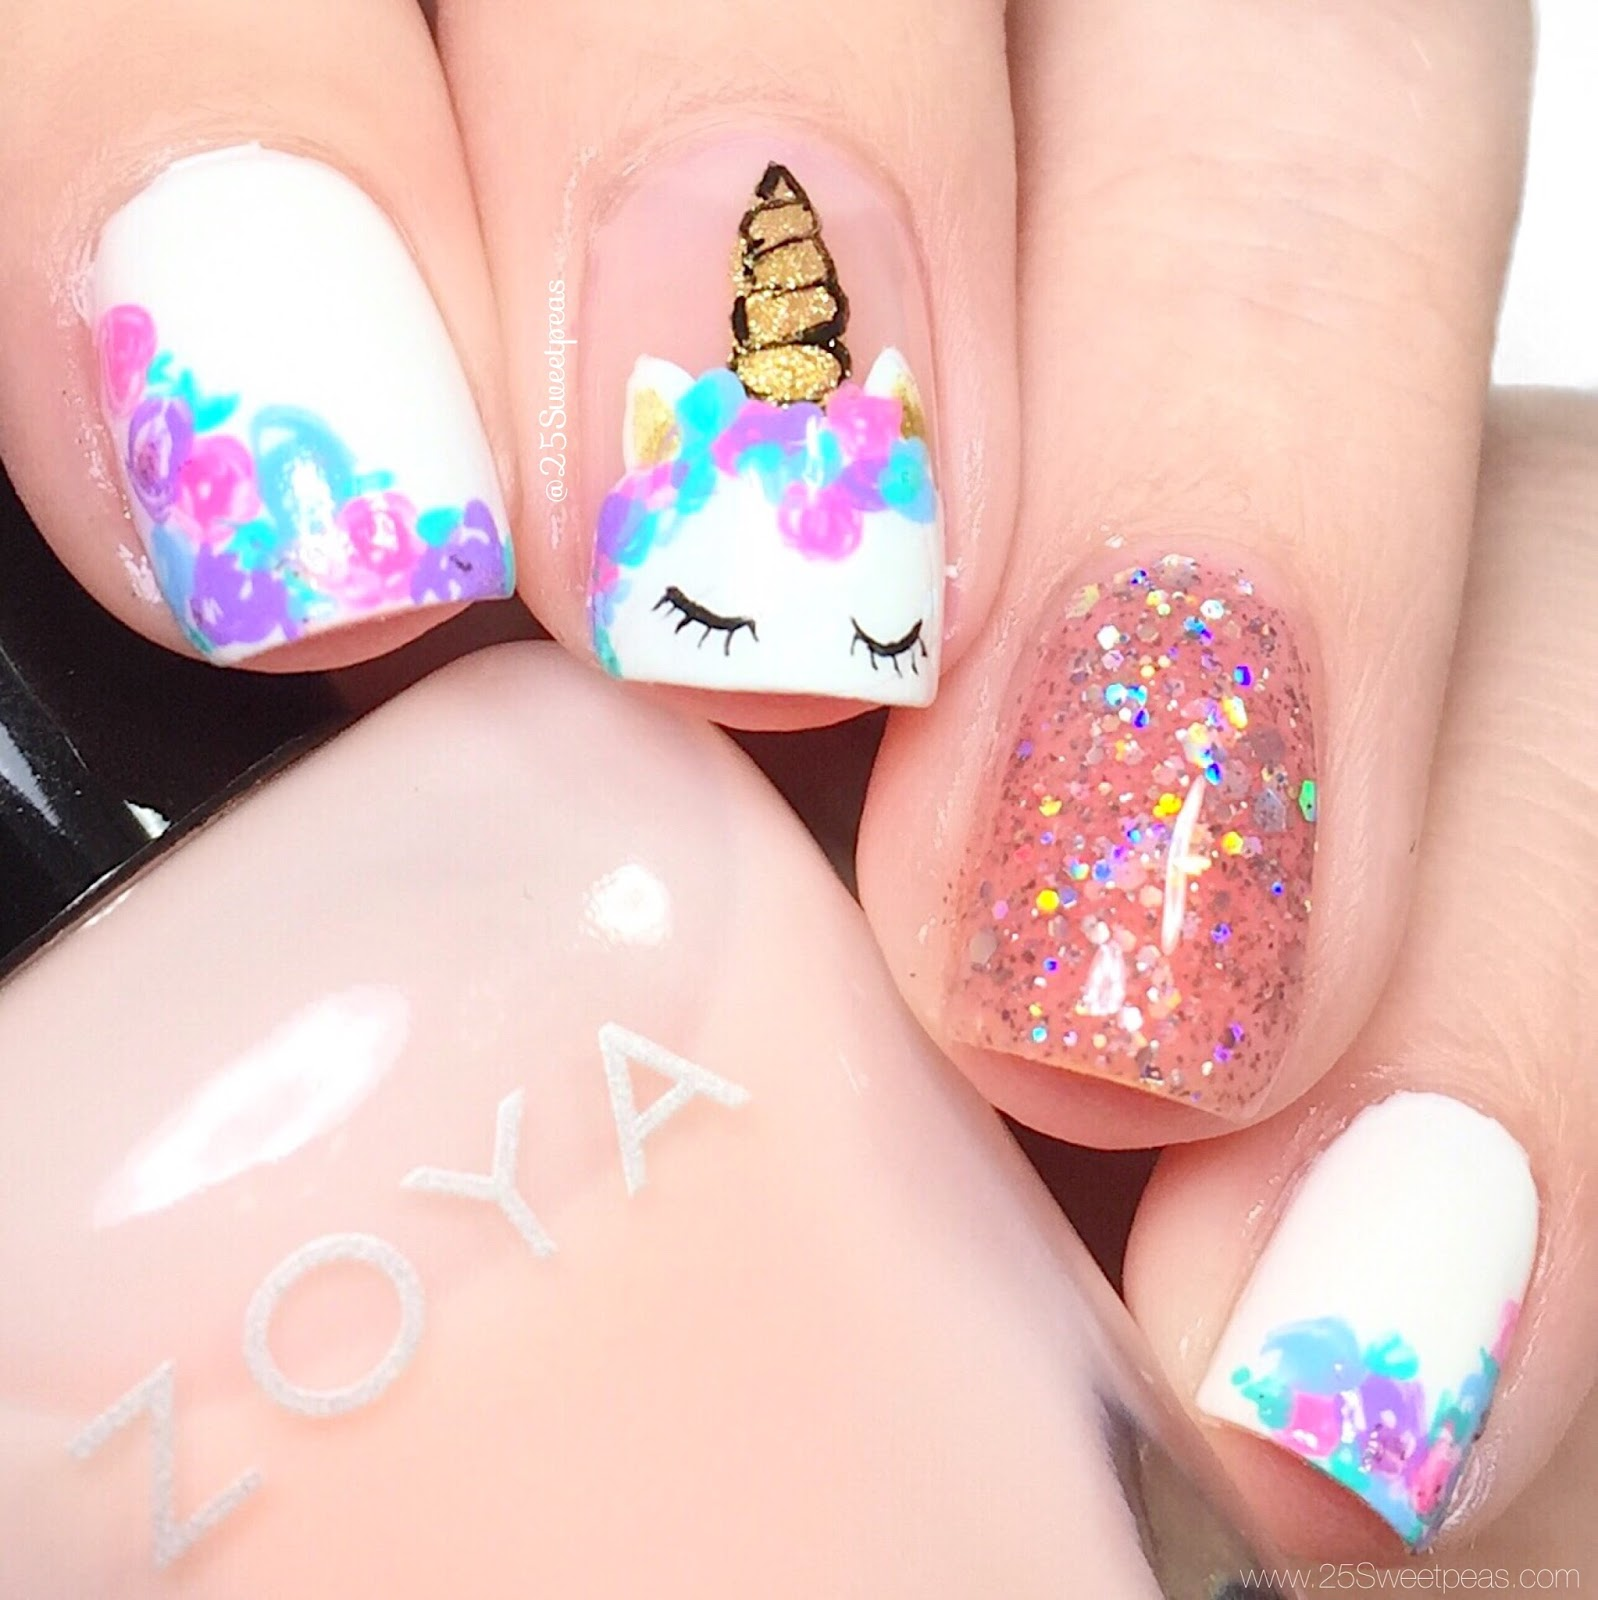 Unicorn Nail Art - Unicorn Nail Art + Tutorial Digital Dozen Mythical Creatures